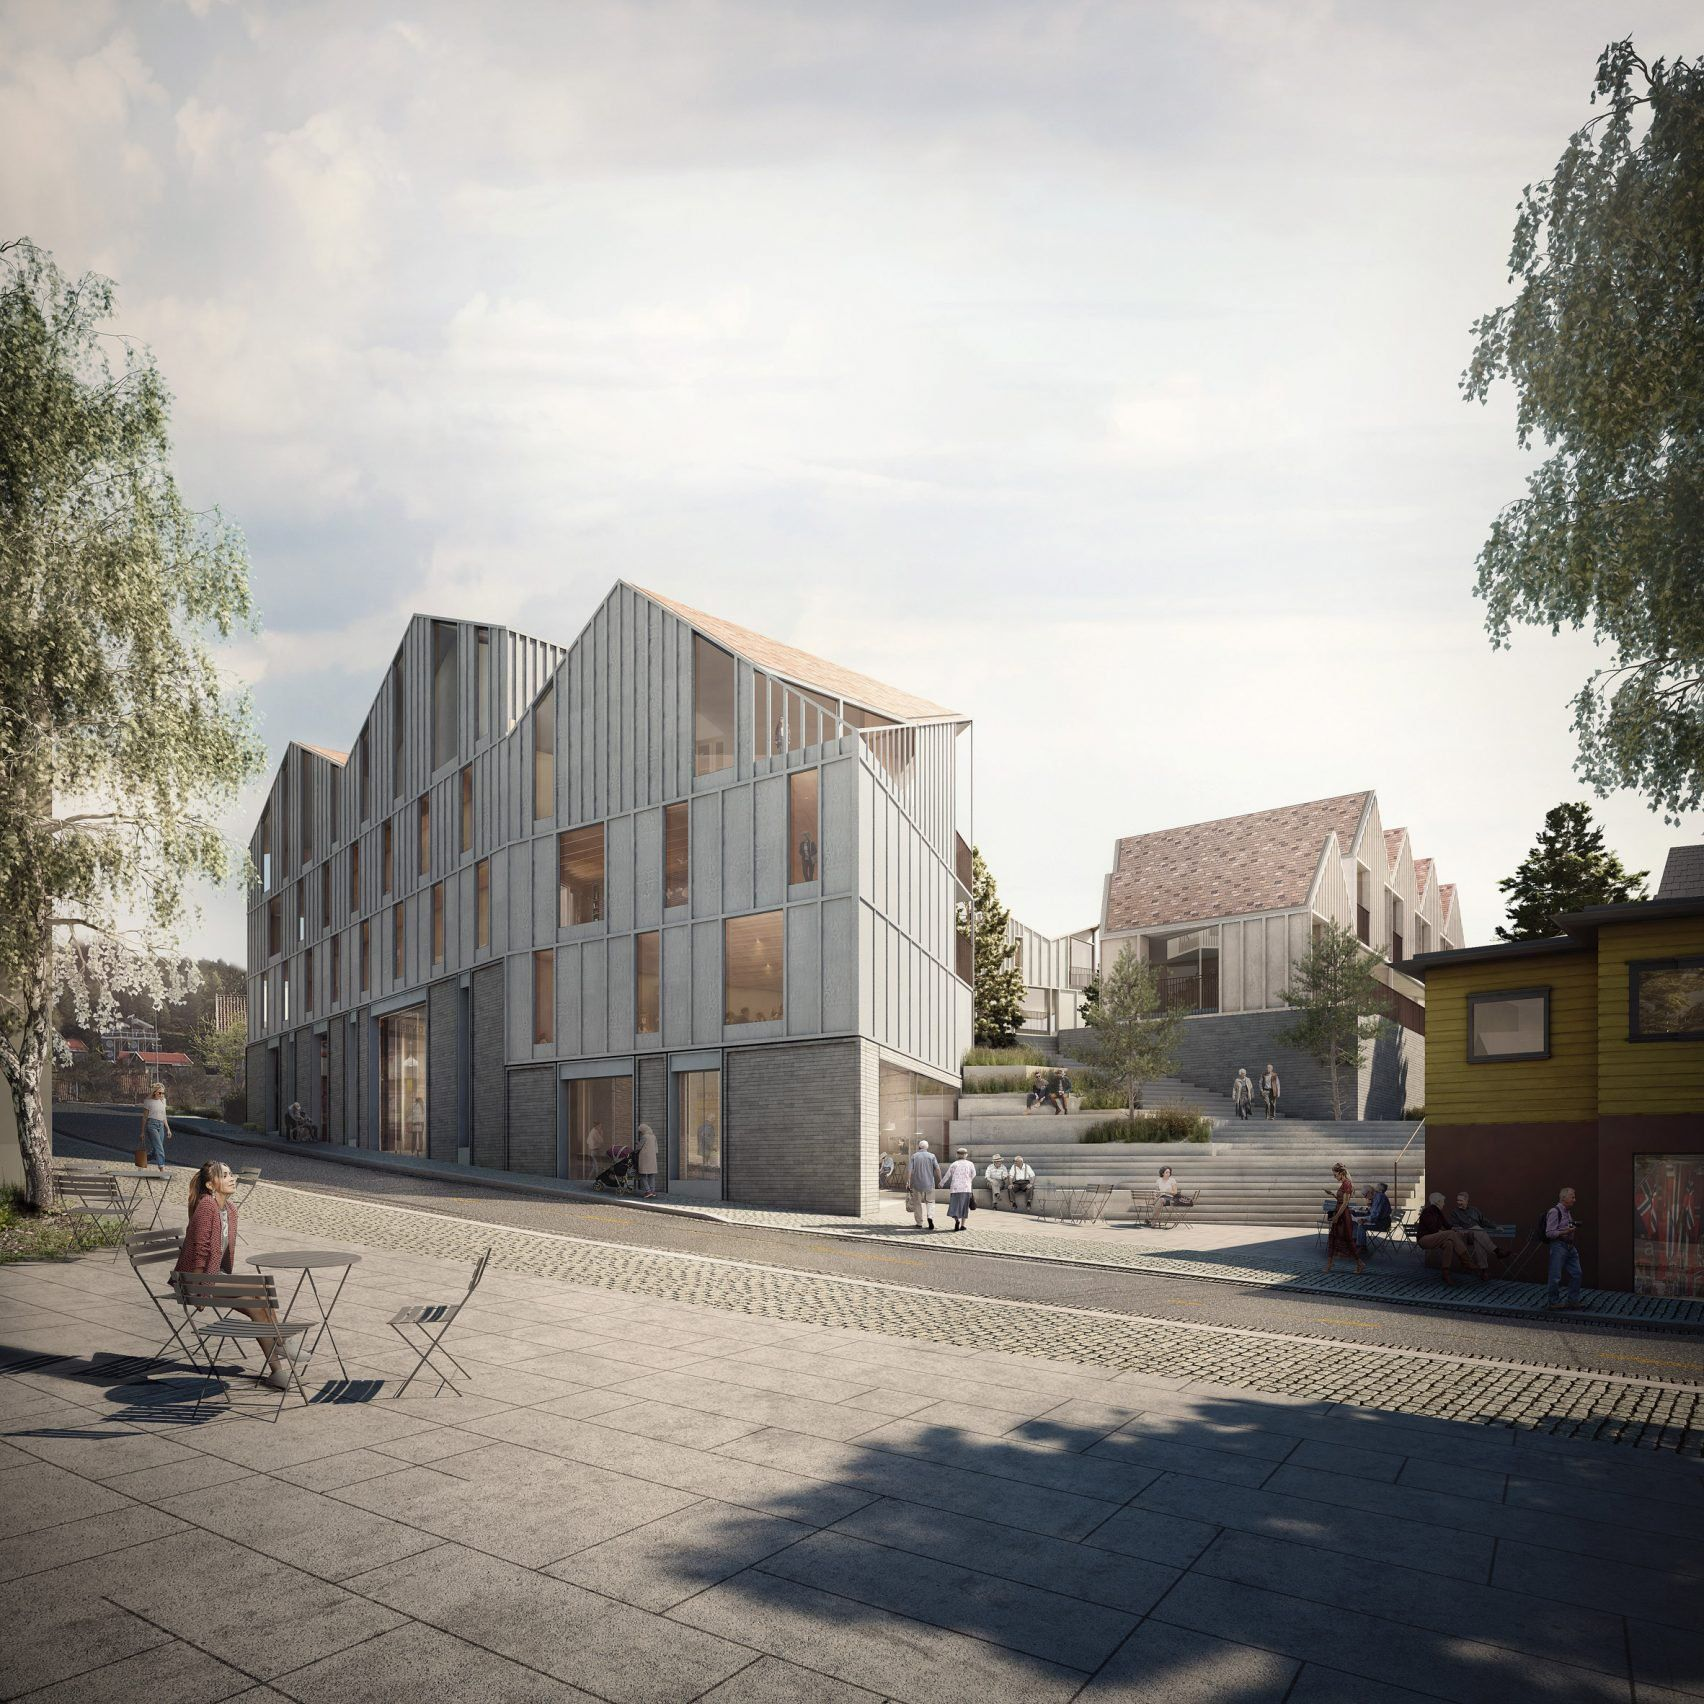 Haptic Designs Elderly Housing For Norway To Encourage Socialising Architecture Visualization Architecture Architecture Exterior